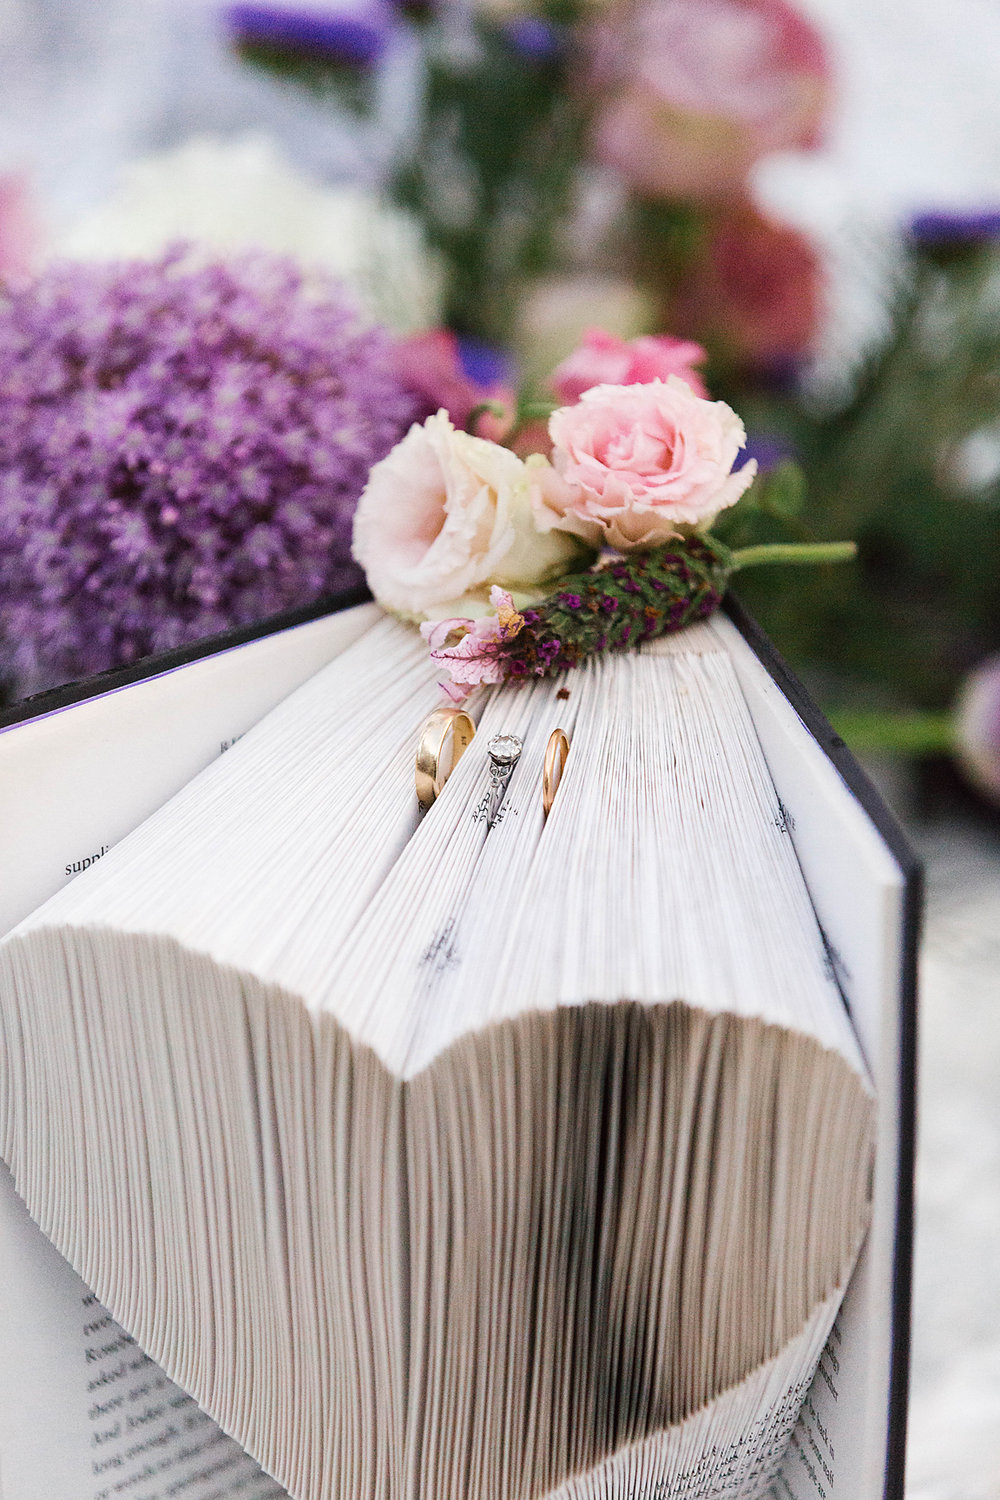 Book art by  Myaink Words . Photography by  Poppy & Sage Photography .